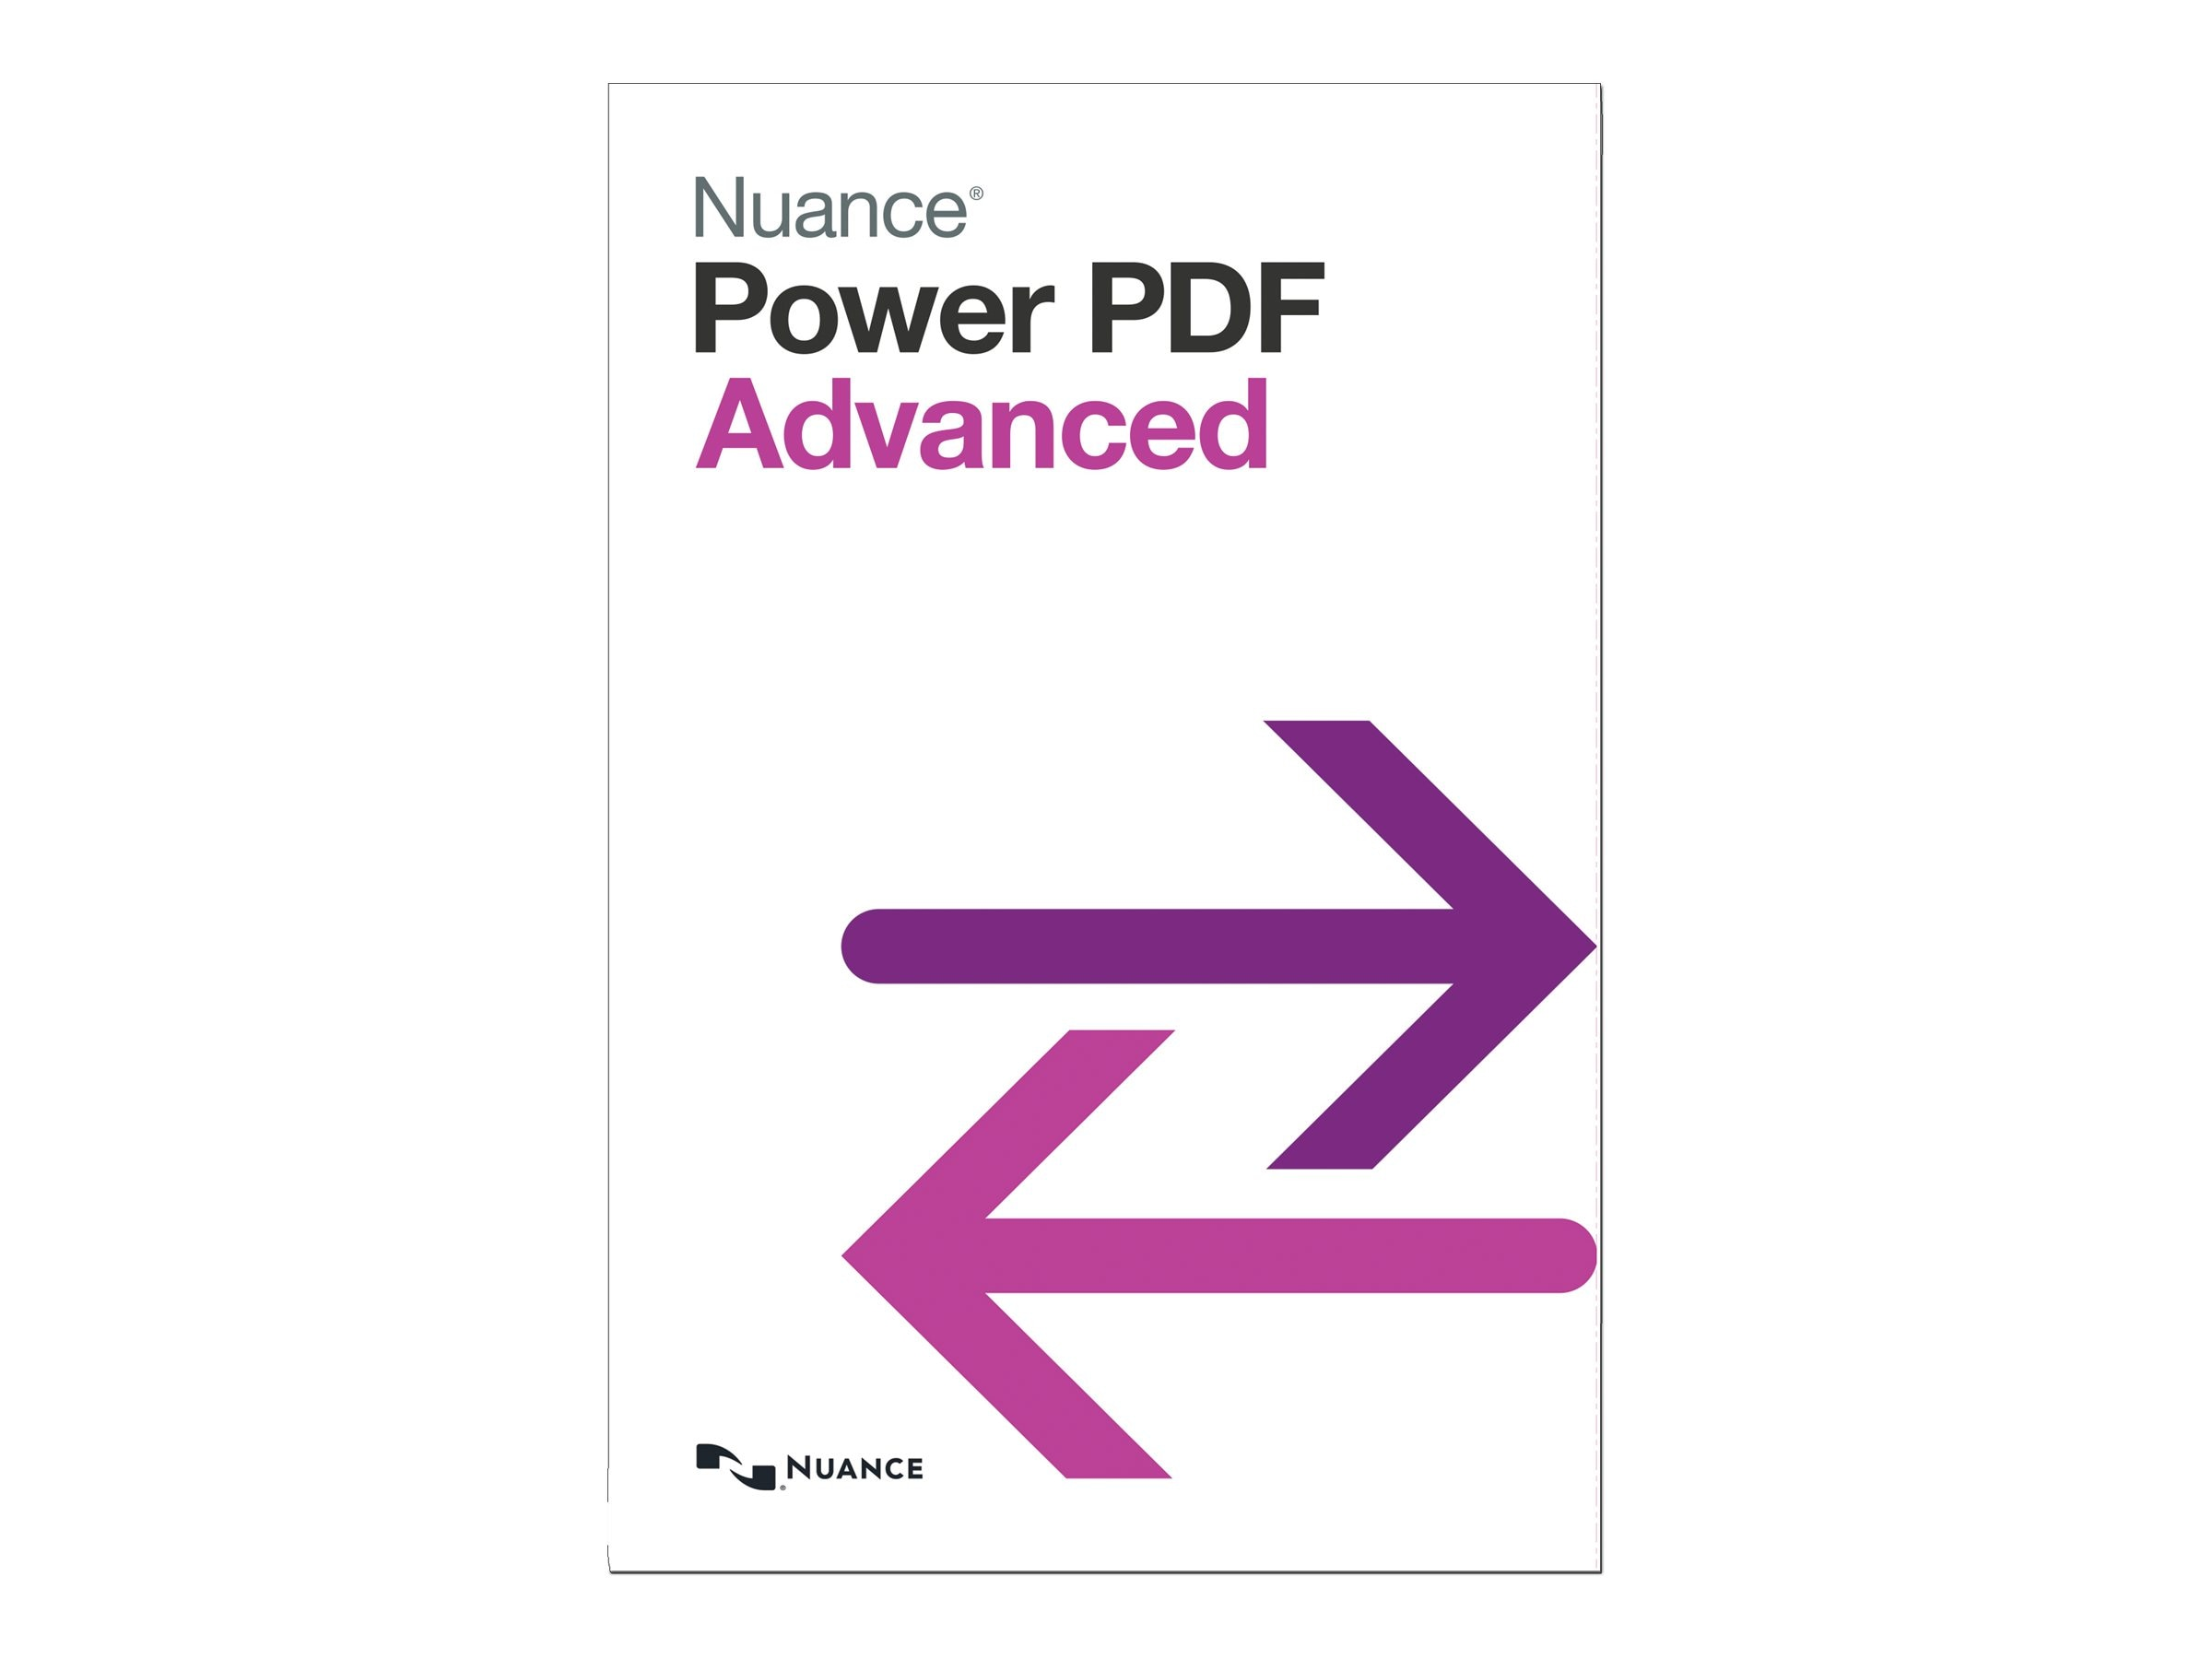 Nuance Power PDF Advanced 1.0 - English - Retail DVD Mailer